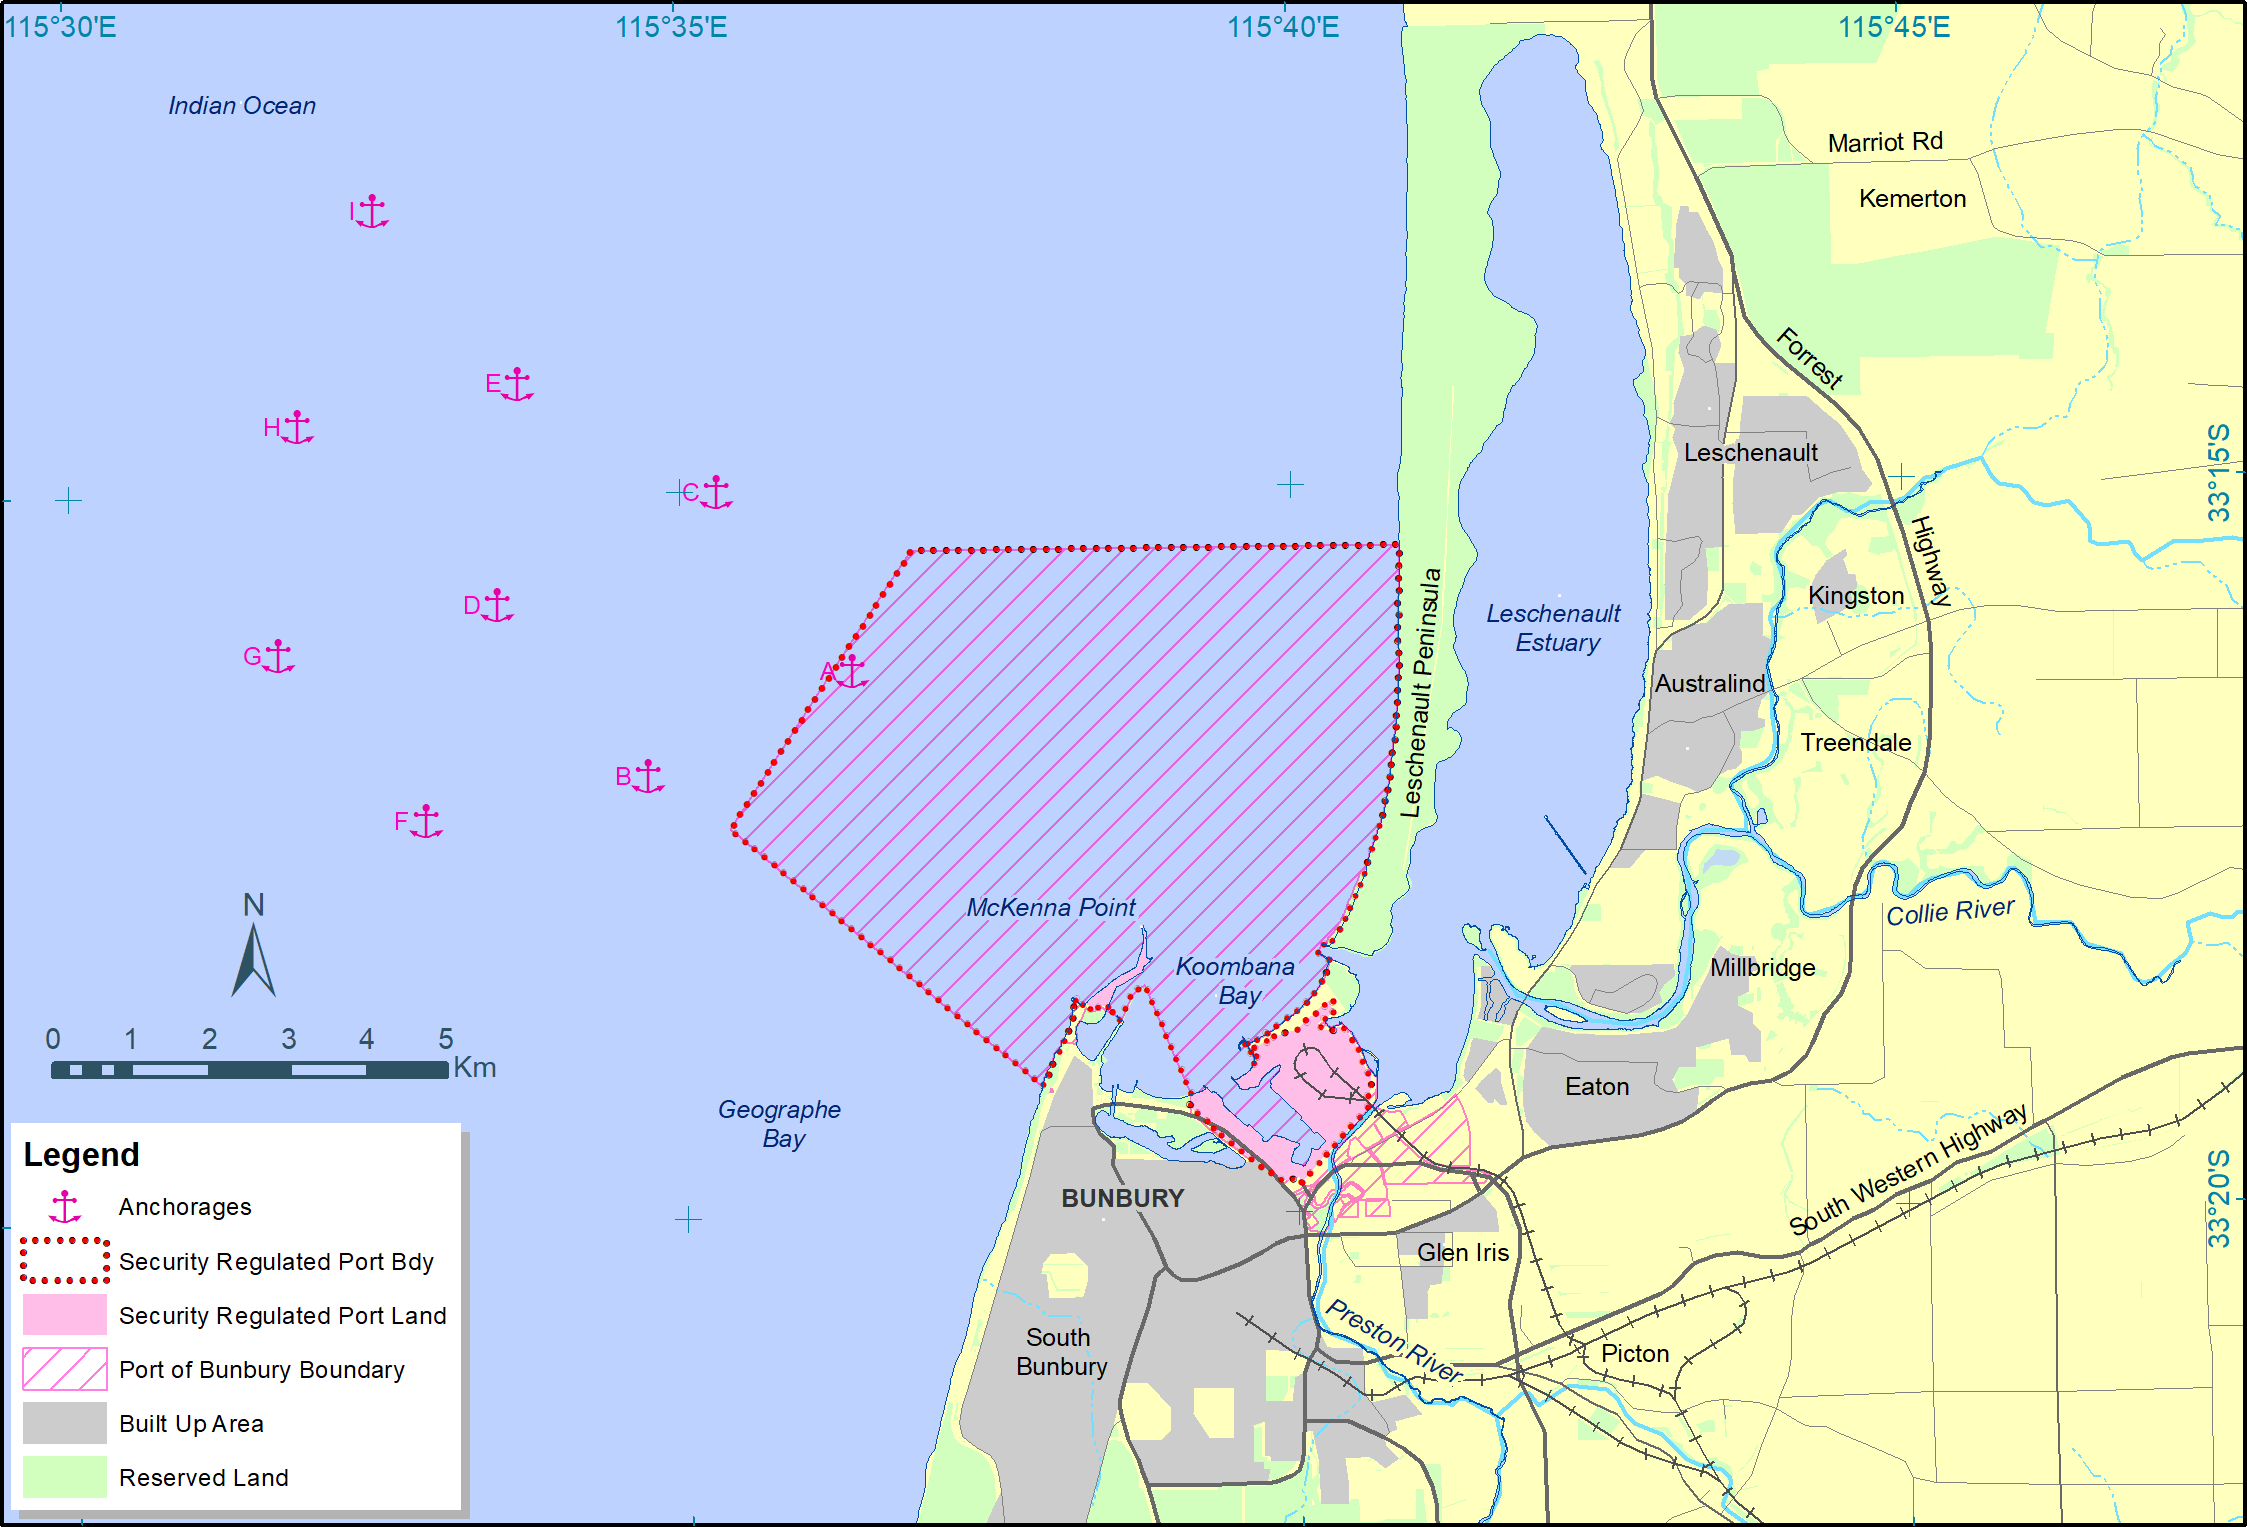 Bunbury Port Boundary and Anchorages